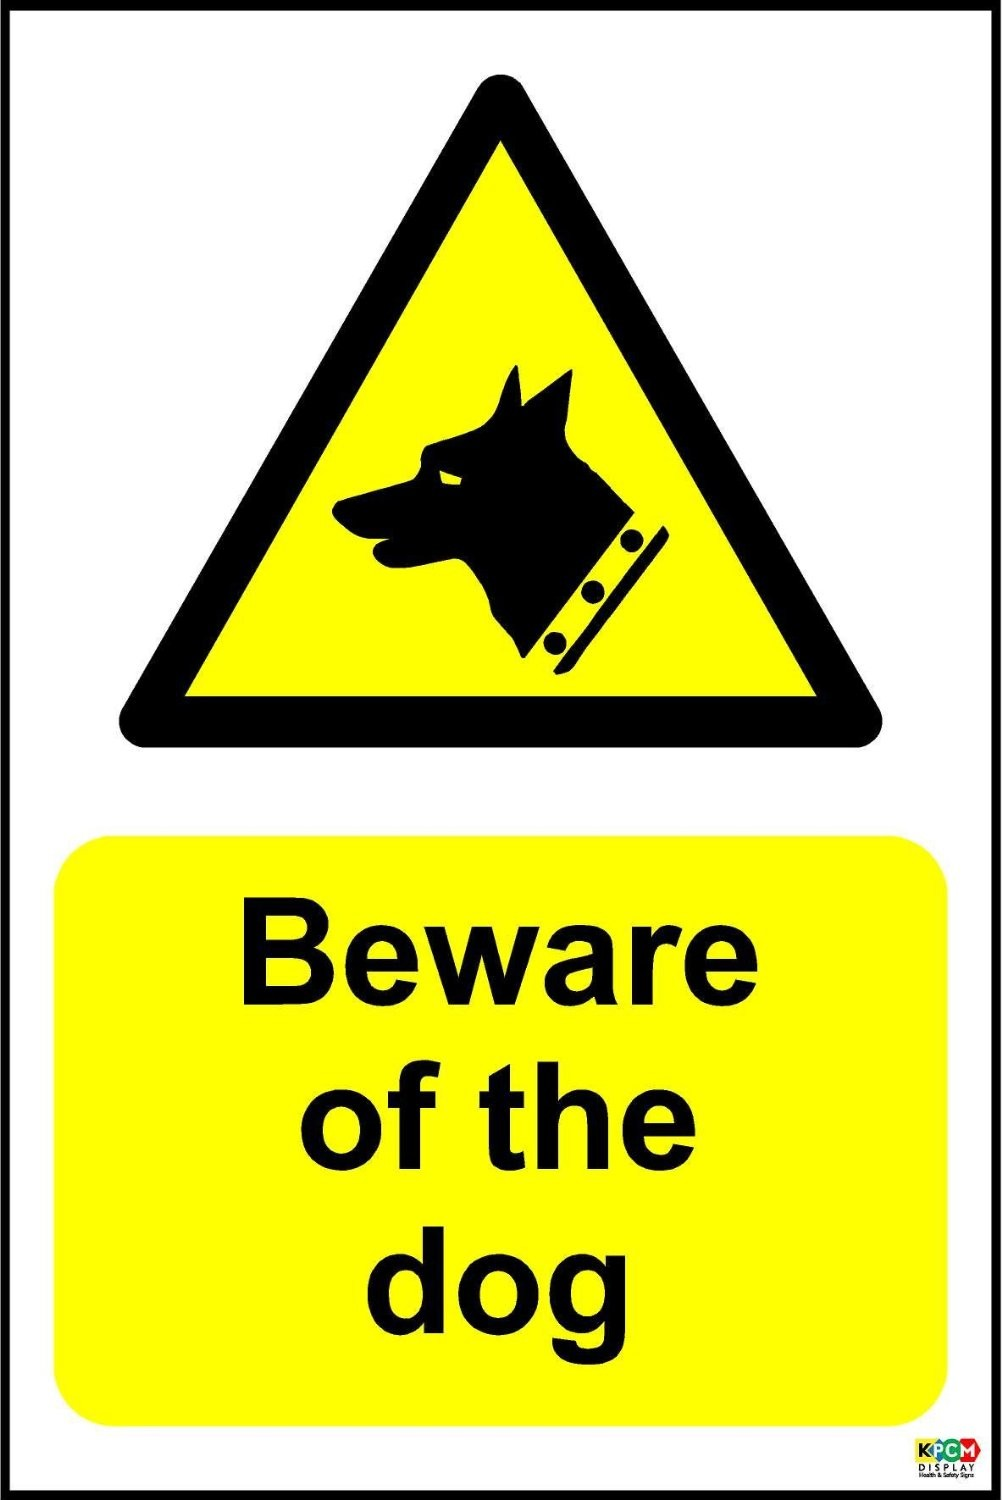 Beware of the Dog warning sticker